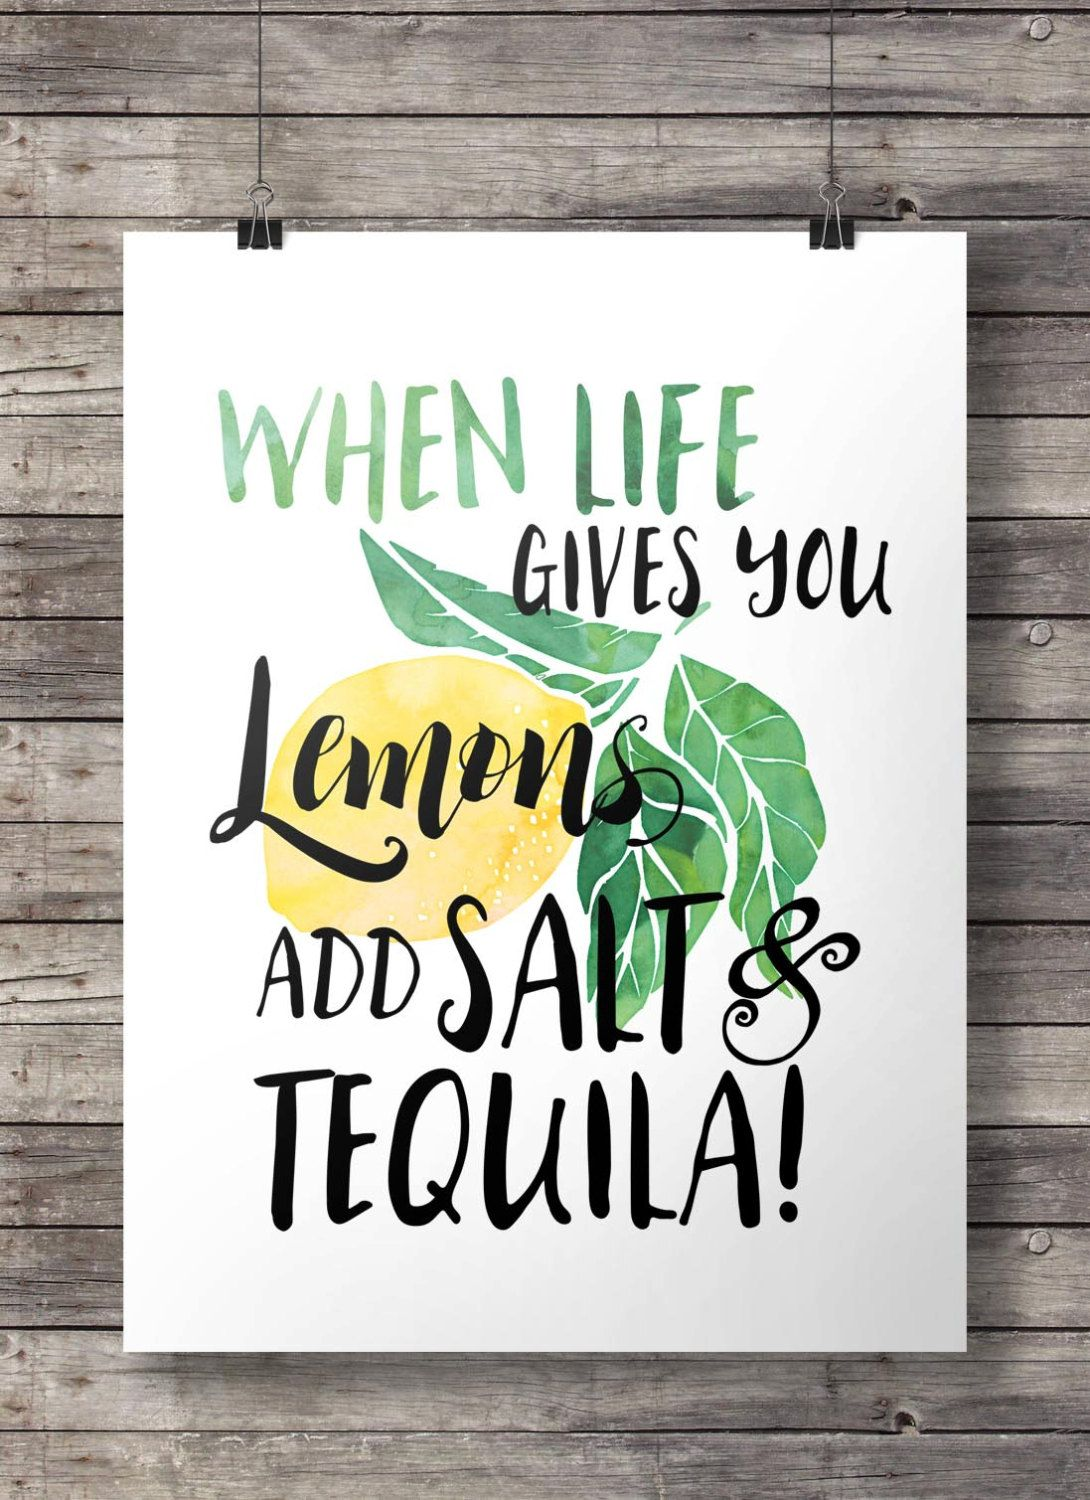 When life gives you lemons, add salt and tequila